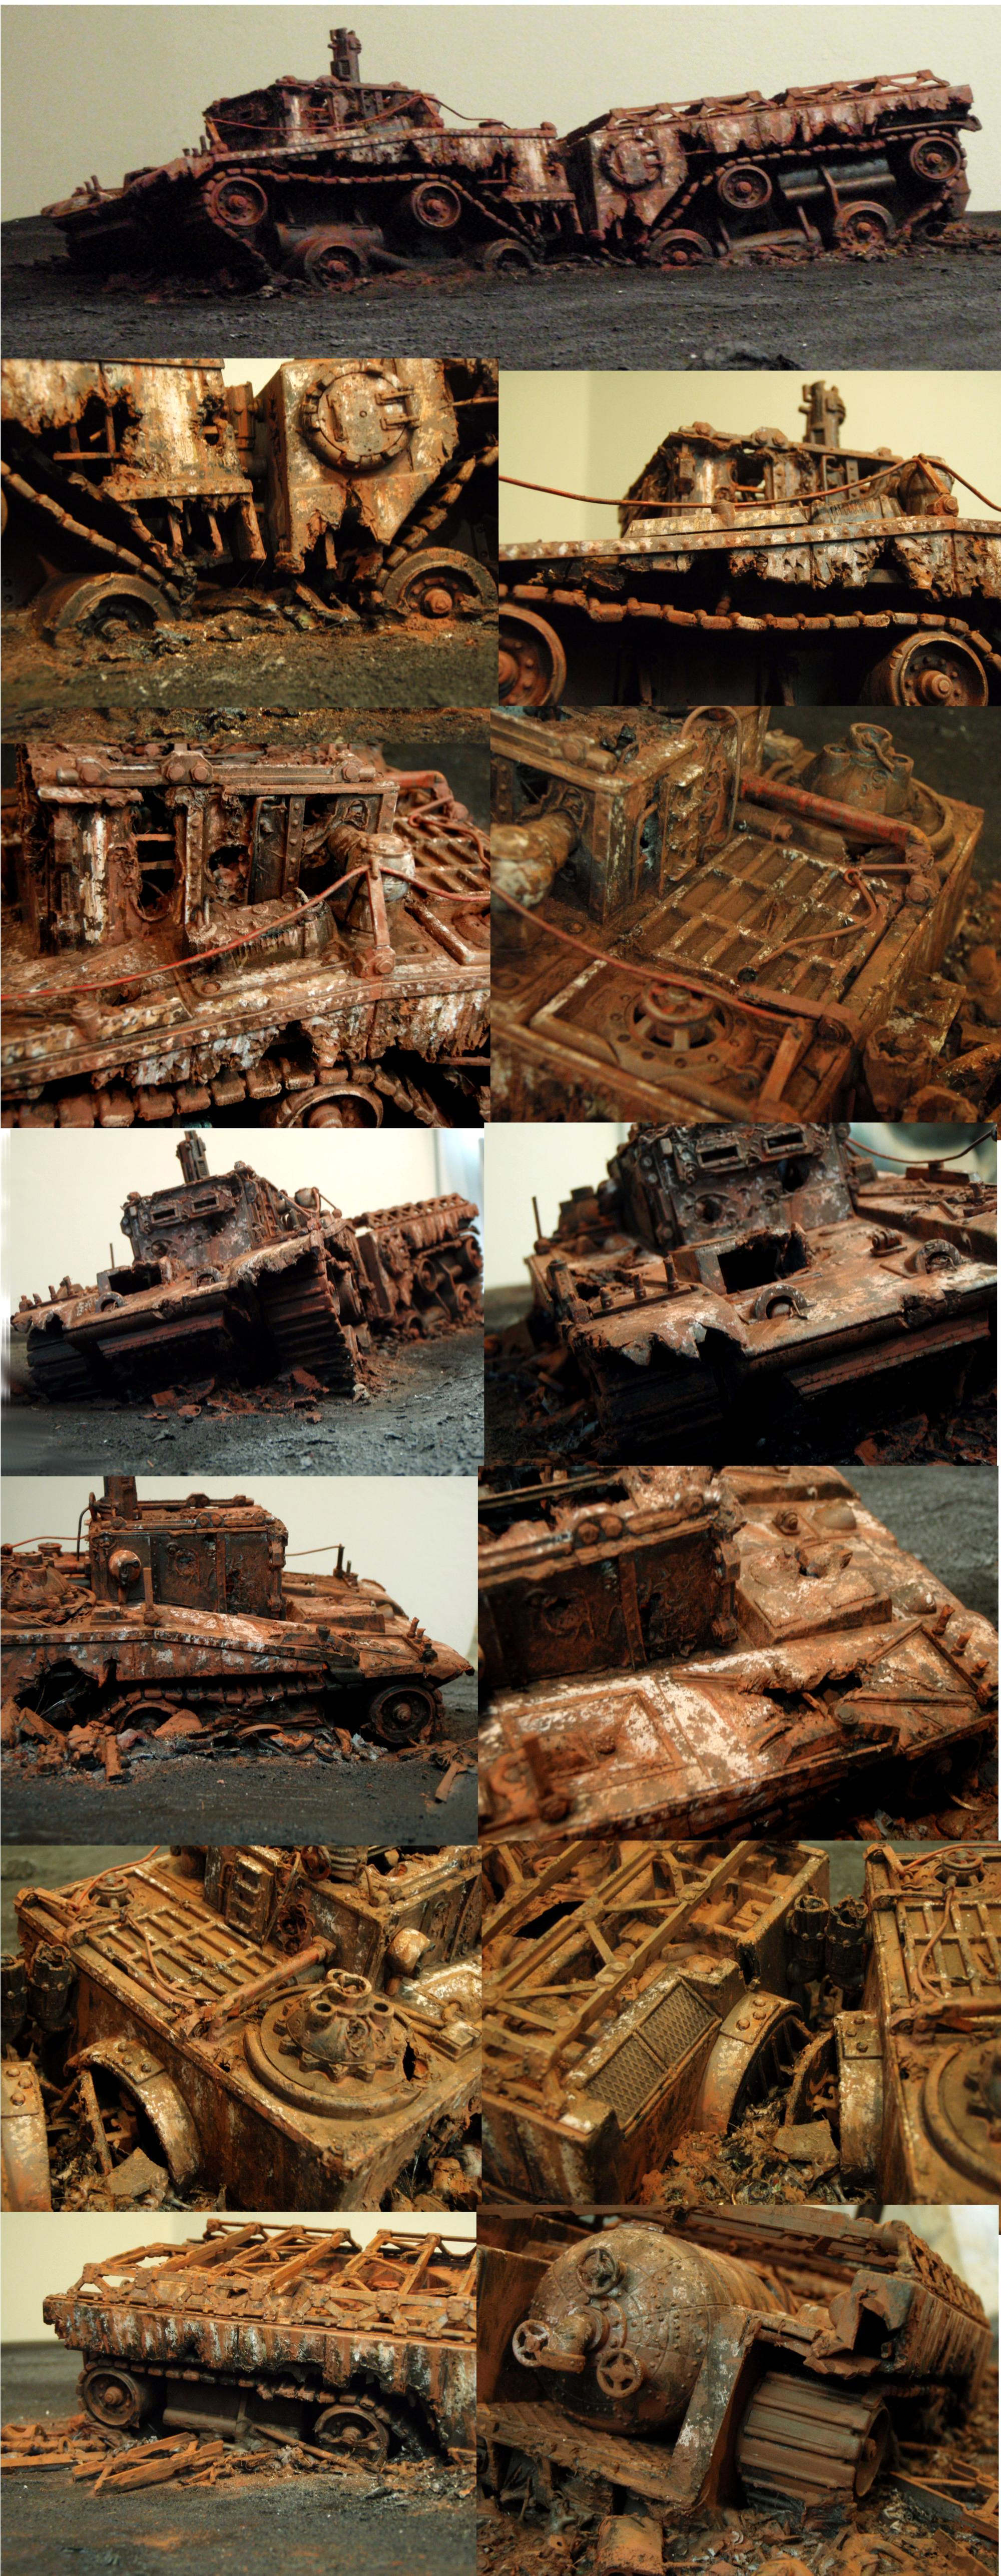 Ash Wastes, Civilian, Crawler, Rust, Truck, Weathered, Wreck